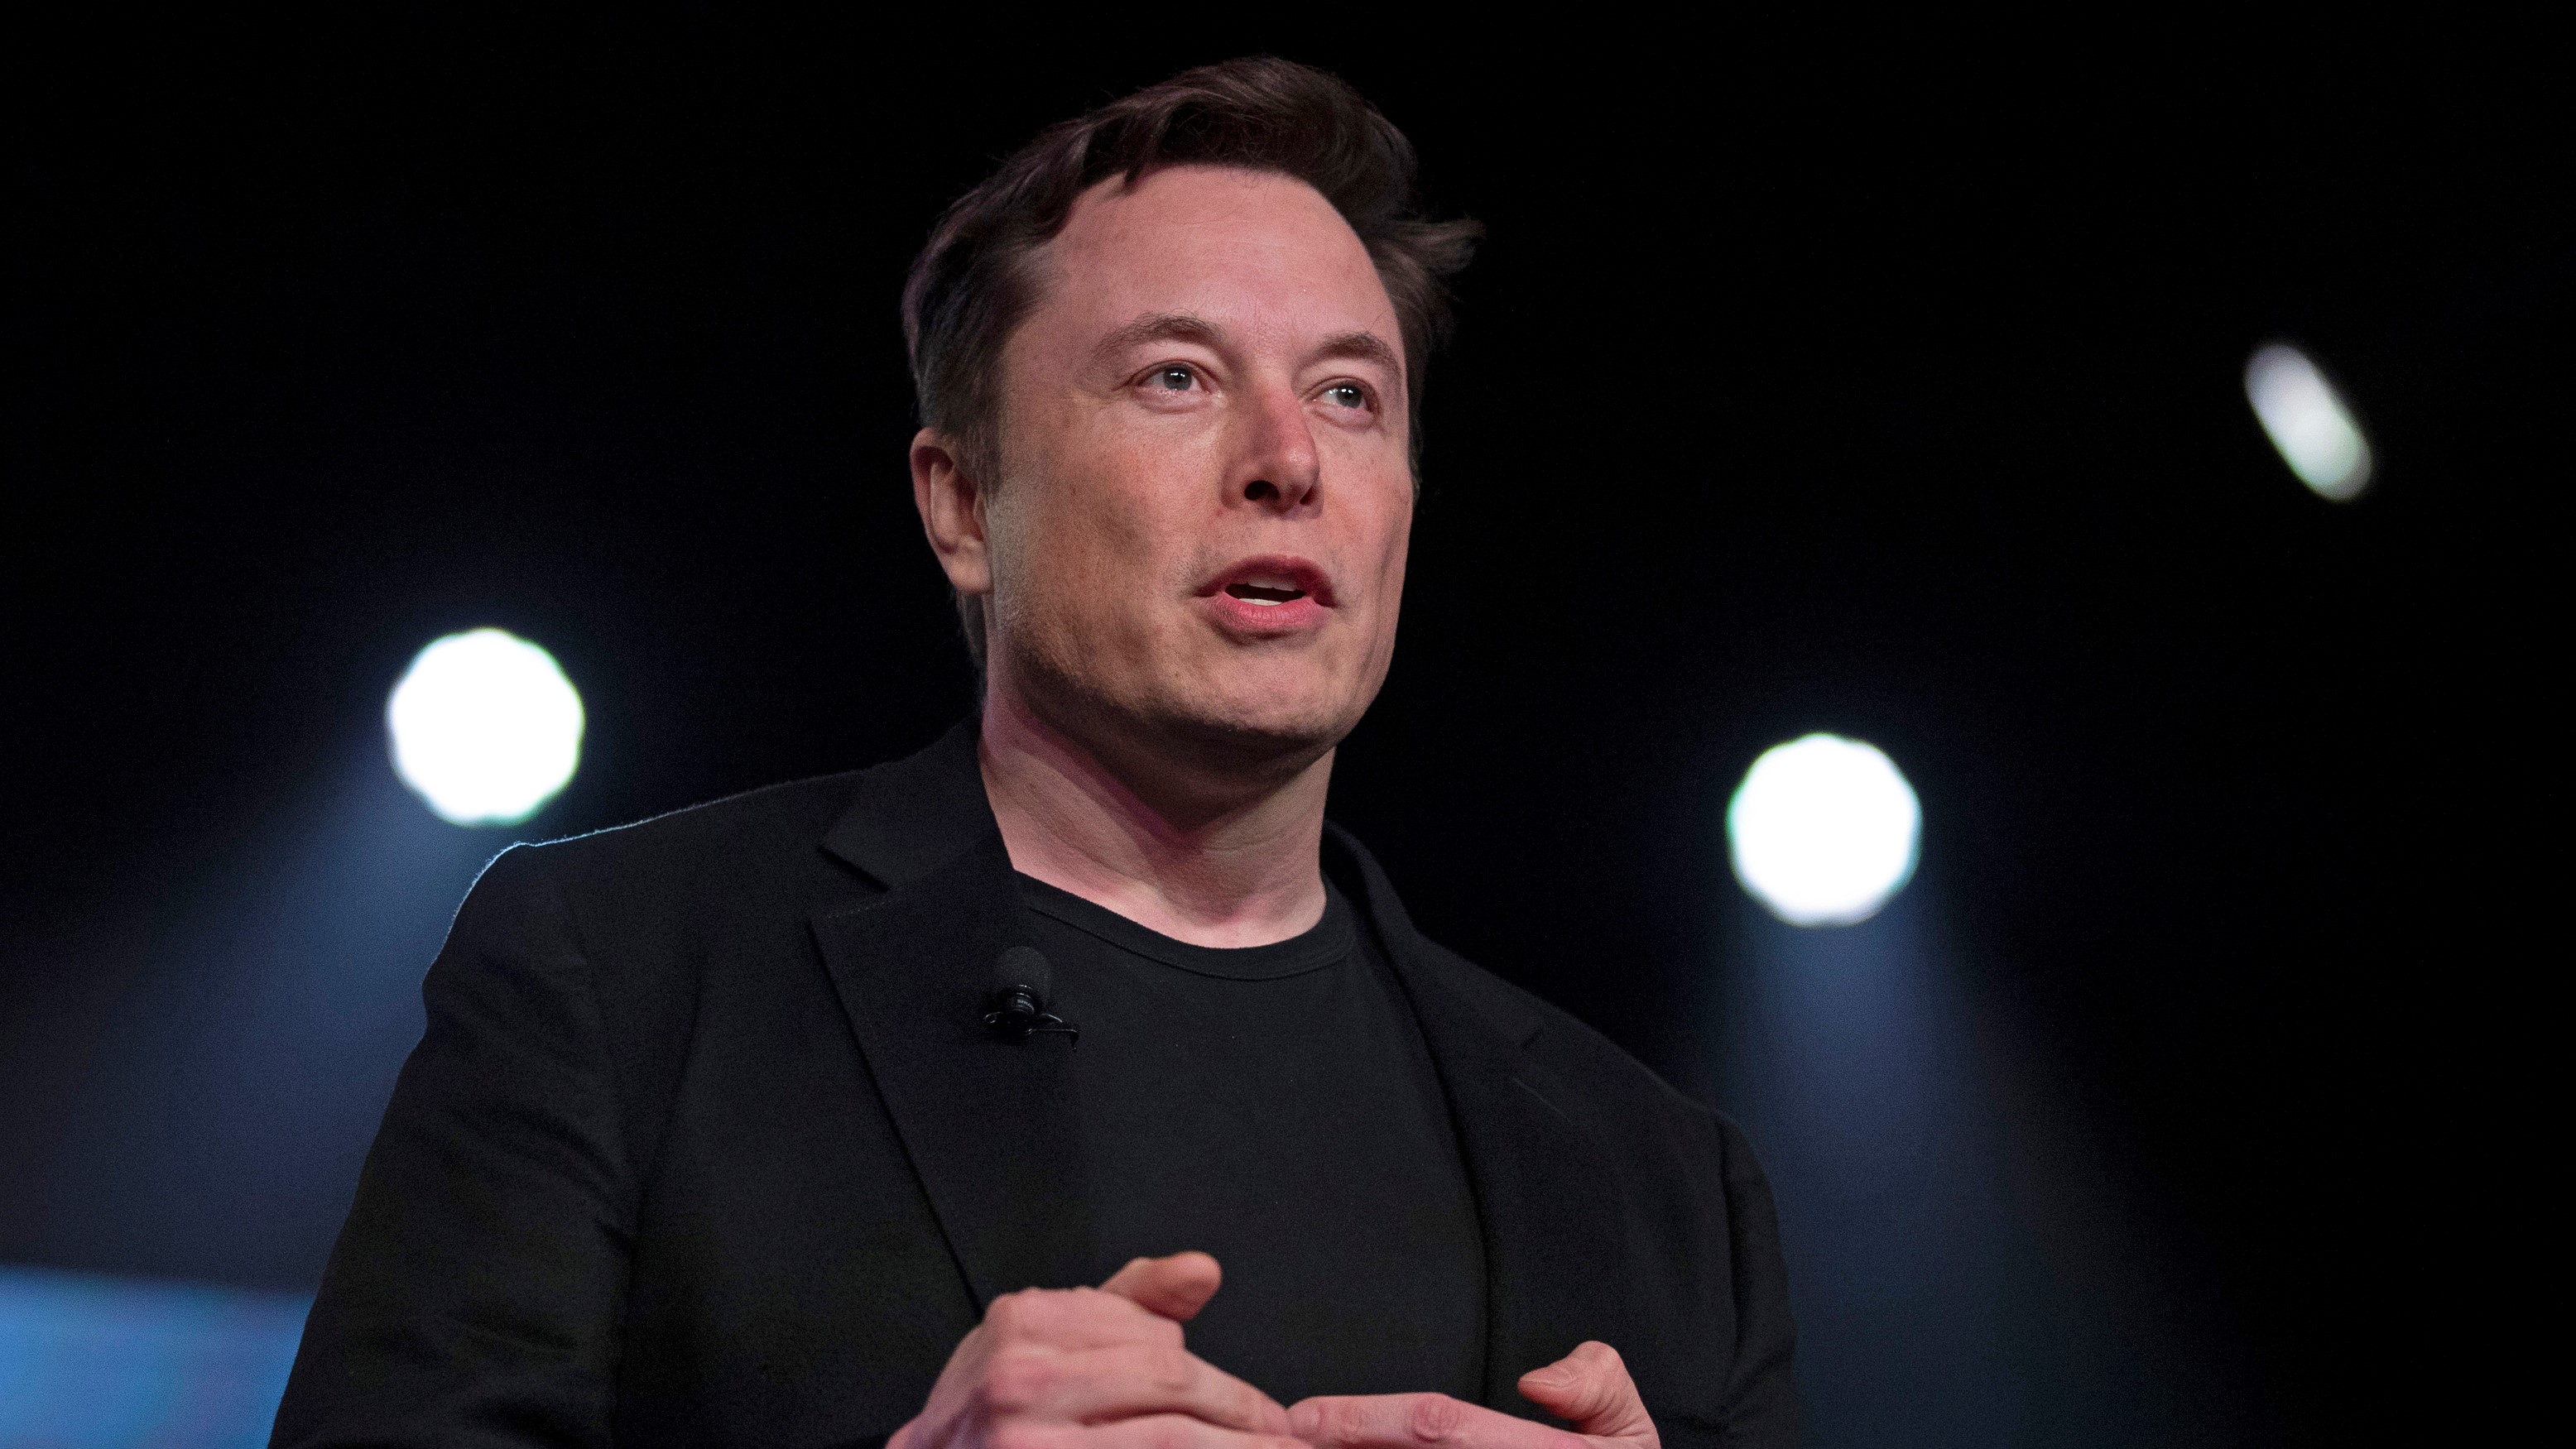 Elon Musk says he supports Andrew Yang for president in 2020